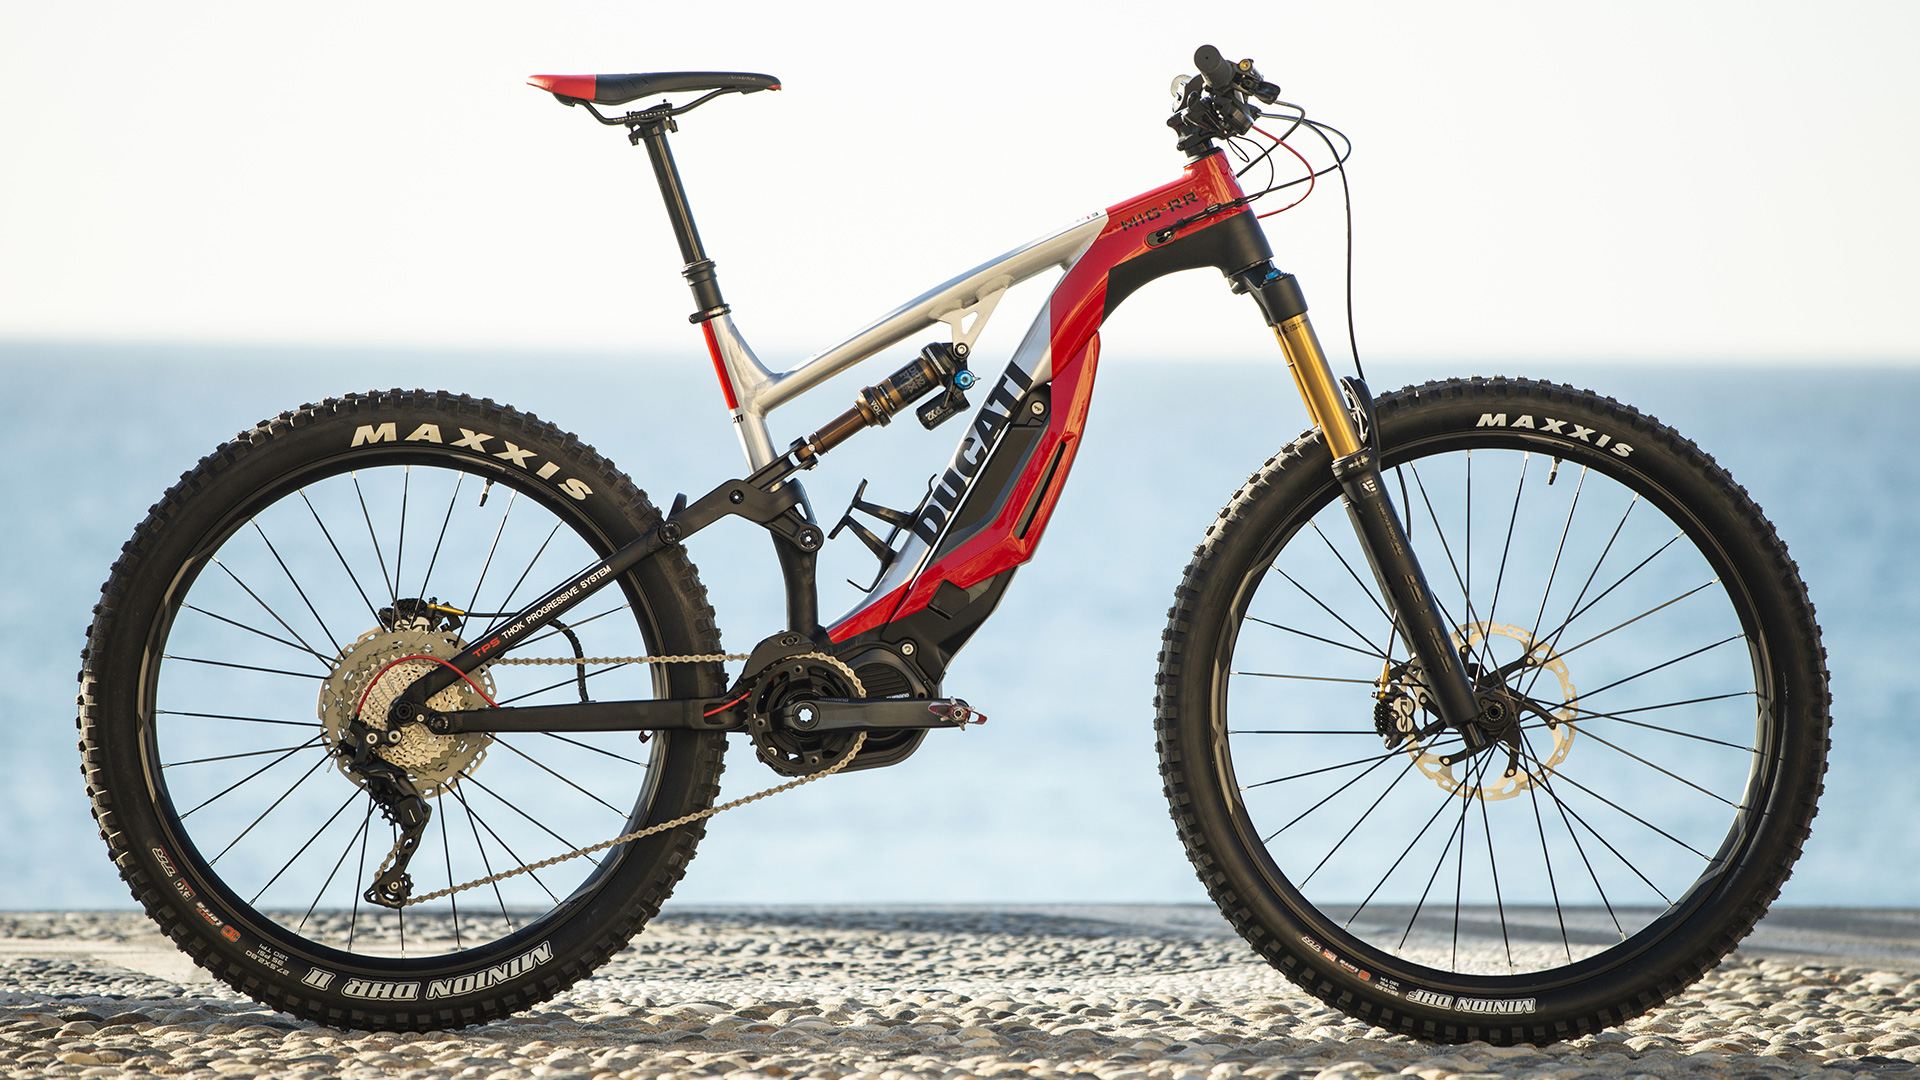 As stylish as its motorcycles – Check out Ducati's electric mountain bike